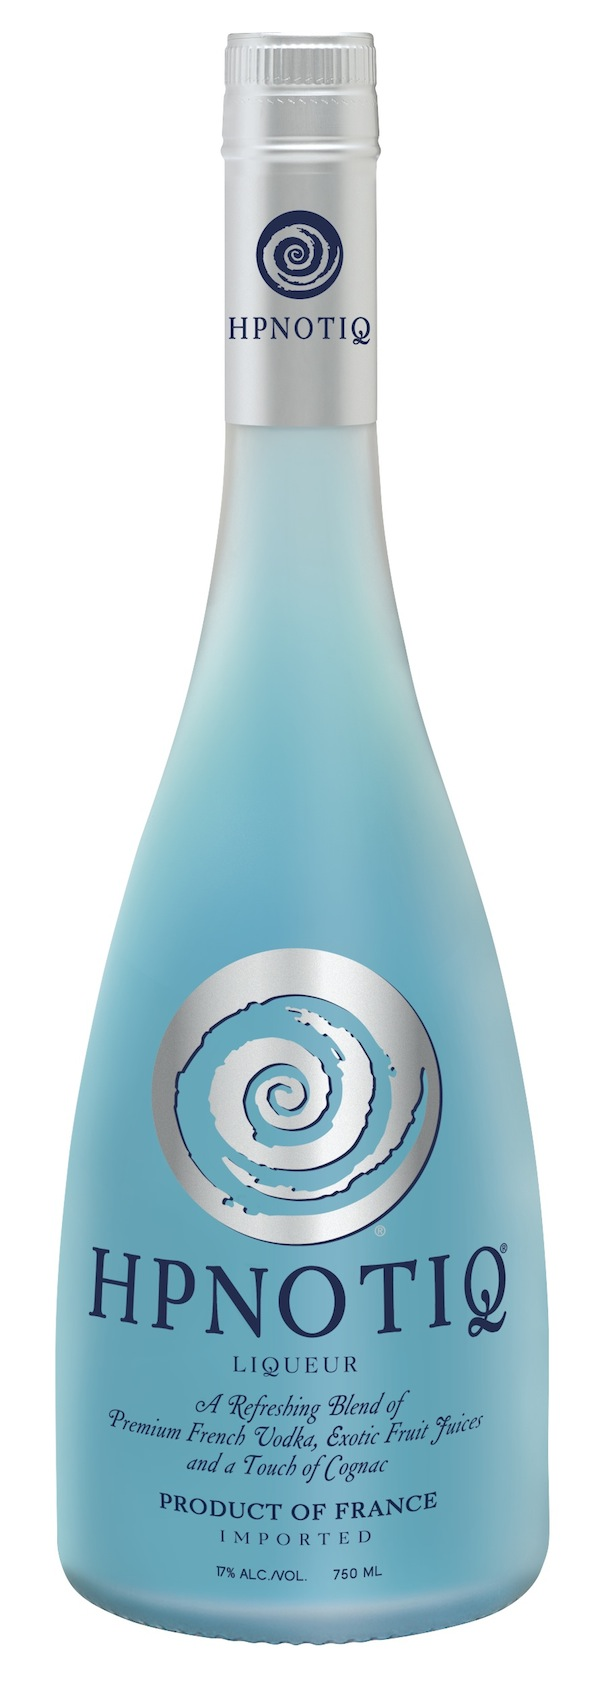 Hpnotiq GlamLouder Bling It On Bottle Image Bling It On! With Hpnotiq: Submit Your Glammest Makeup To Win A Beauty Gift Certificate